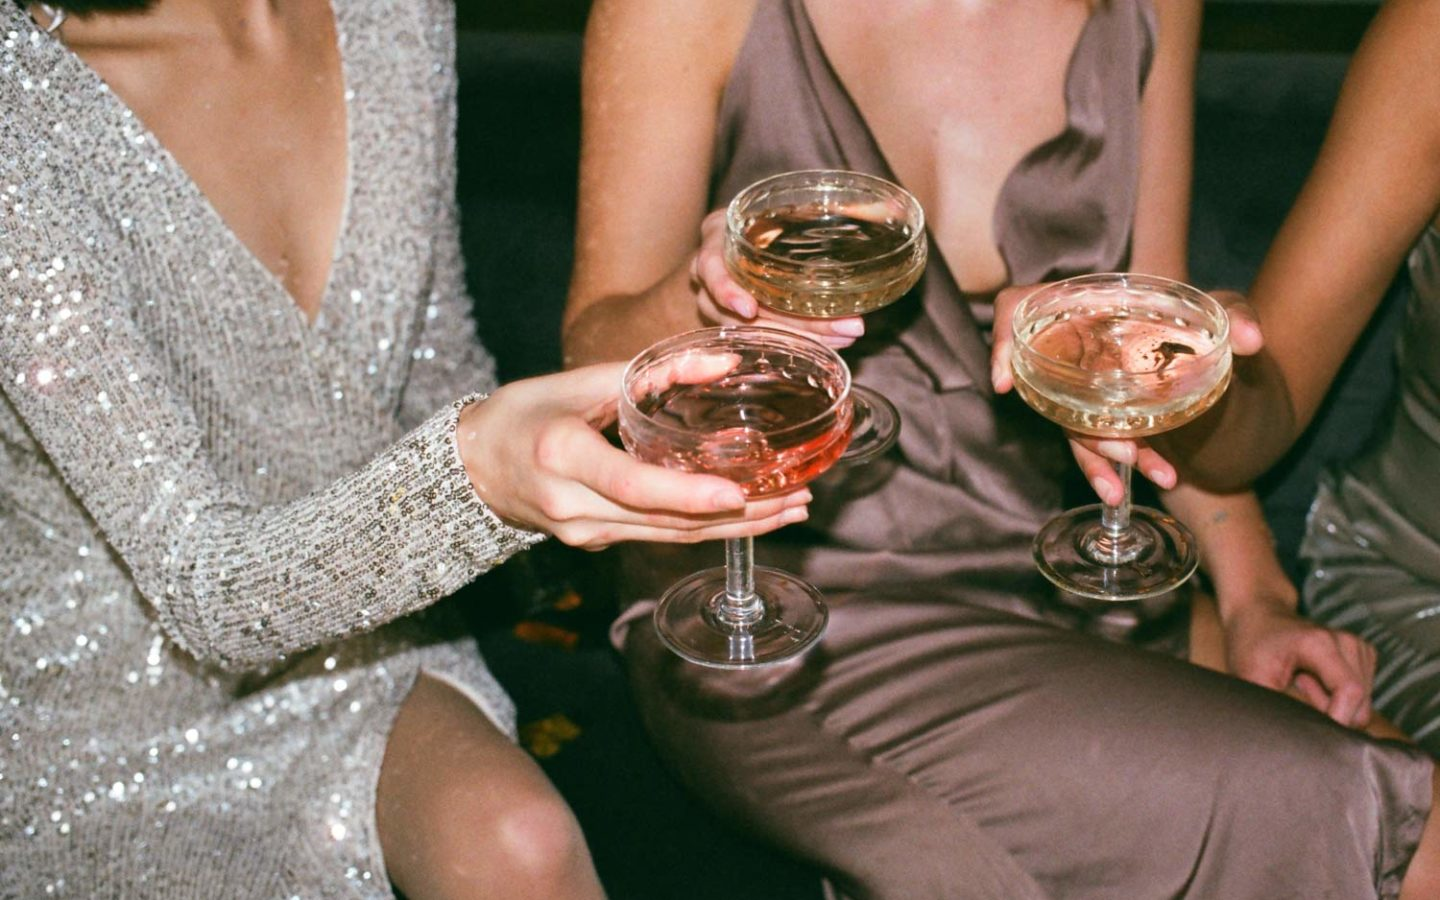 Women in fancy dresses toasting with glasses of wine